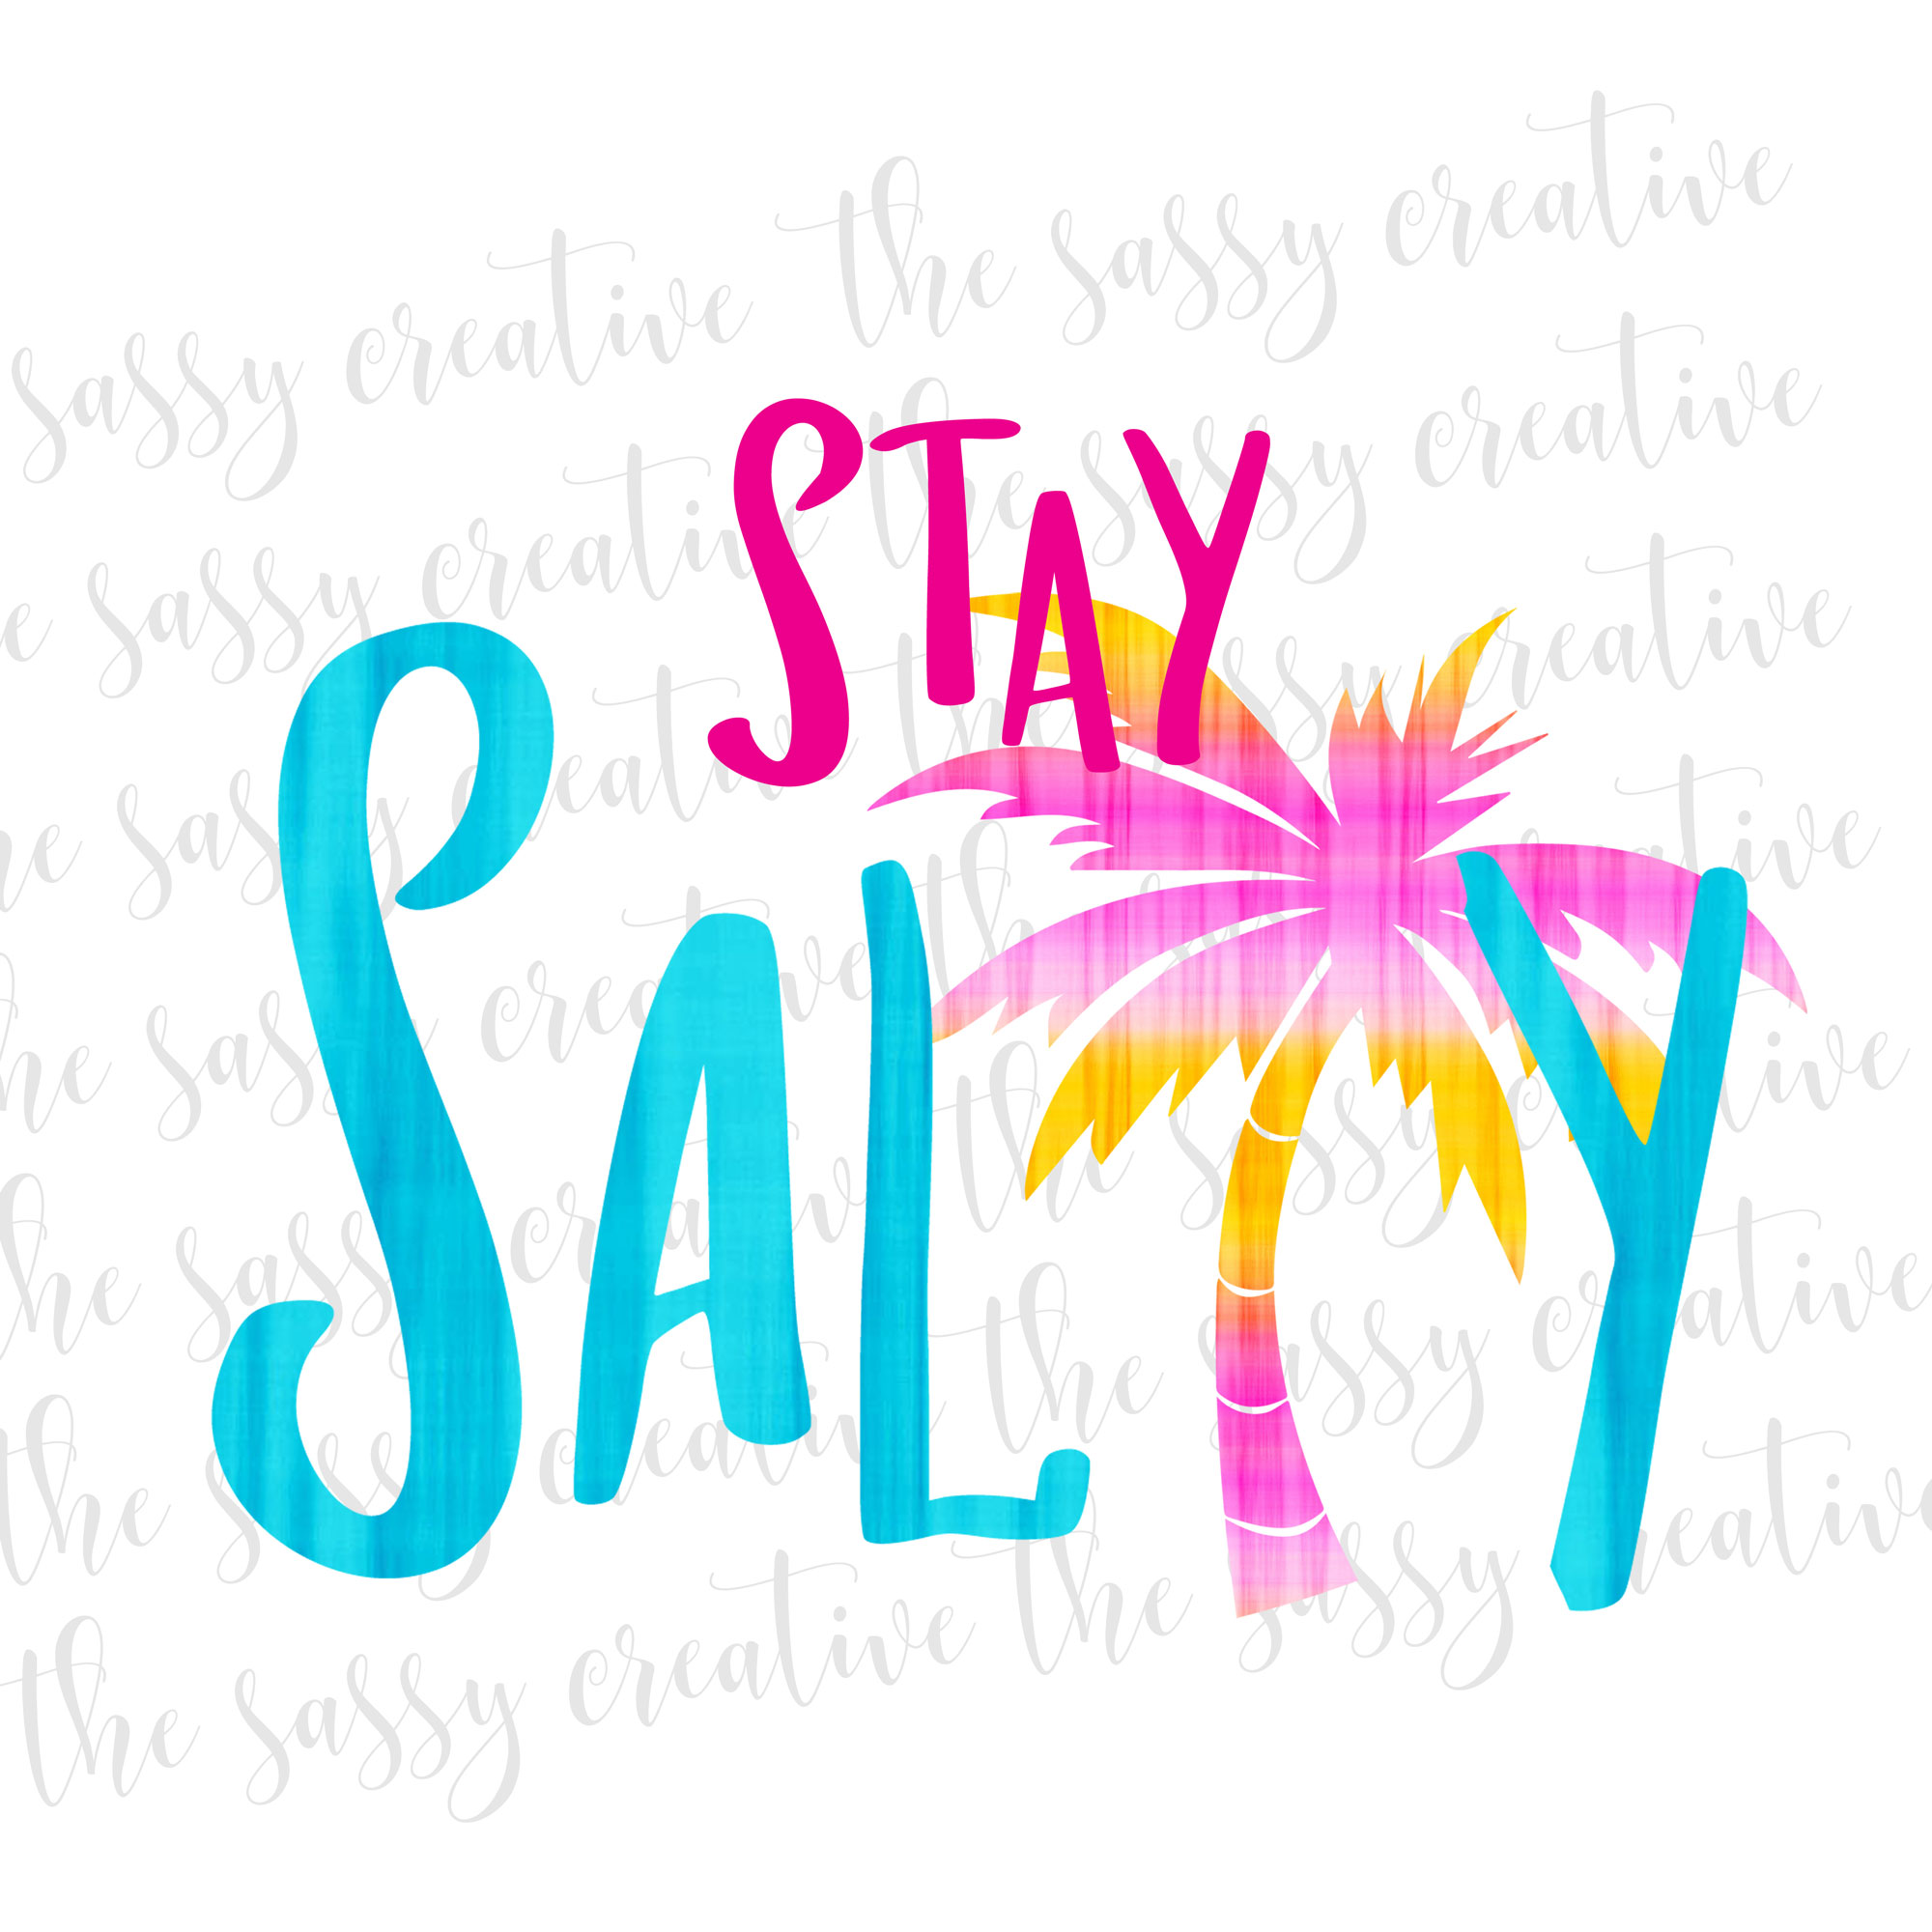 staysaltycover